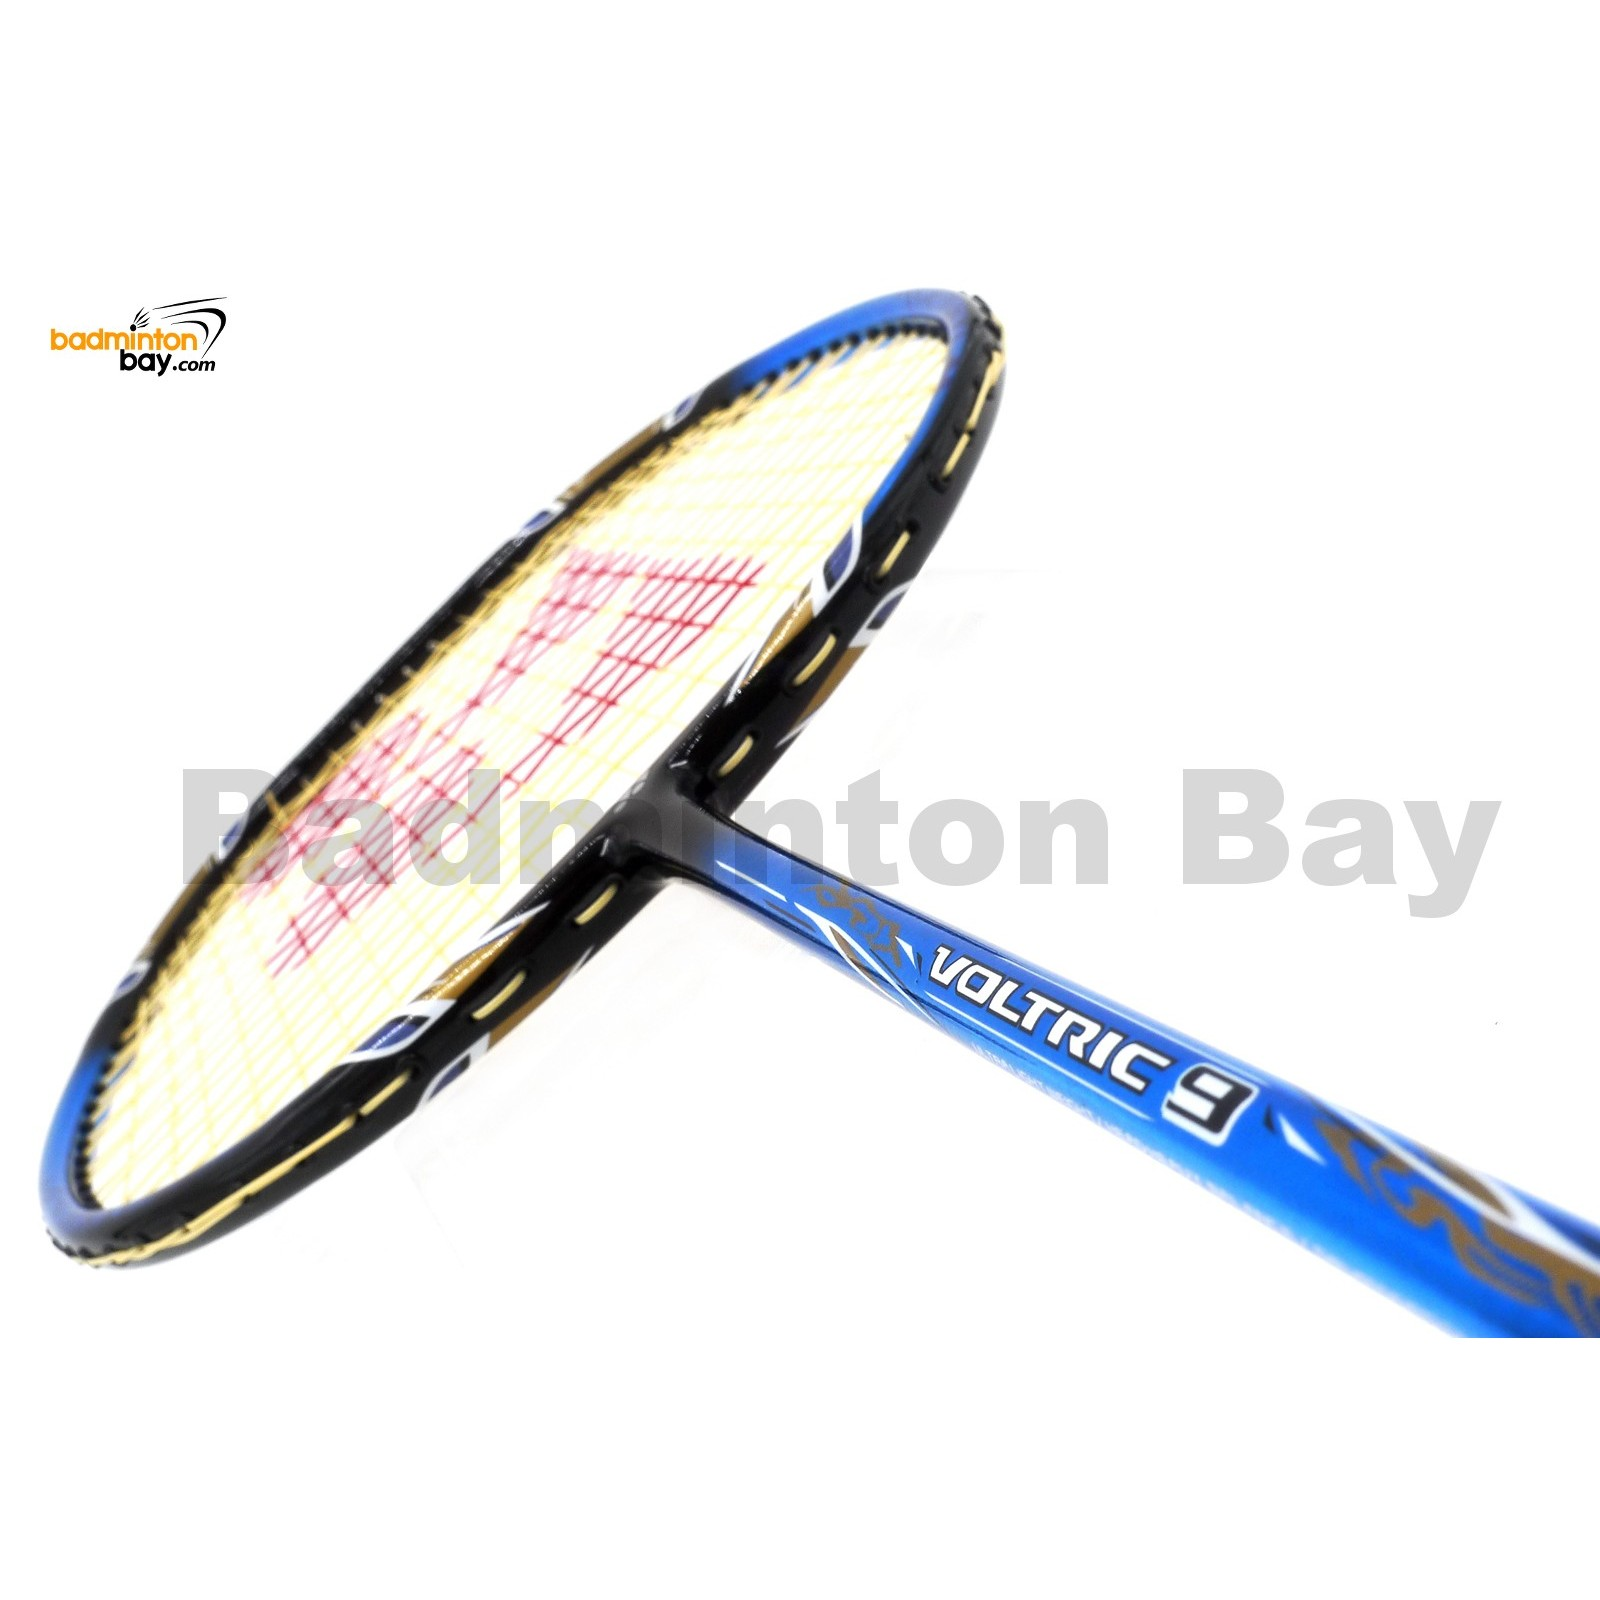 ~Out of stock Yonex Voltric 9 Badminton Racket (3U-G5) Pre-strung at 21lbs